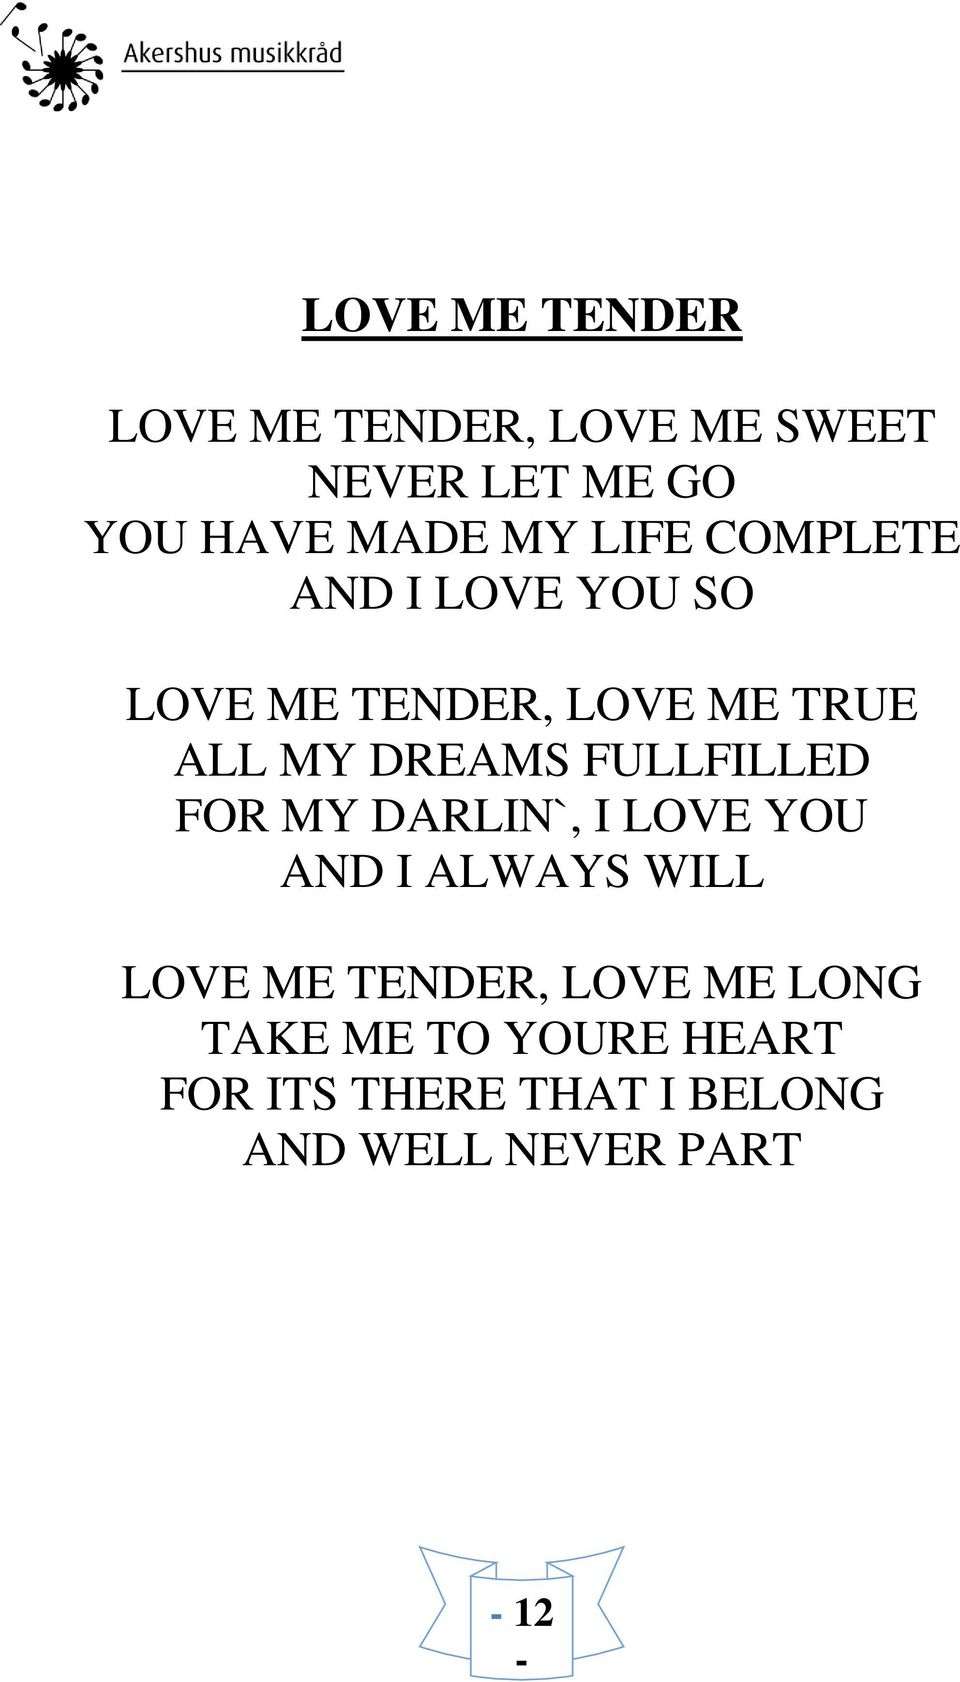 FULLFILLED FOR MY DARLIN`, I LOVE YOU AND I ALWAYS WILL LOVE ME TENDER, LOVE